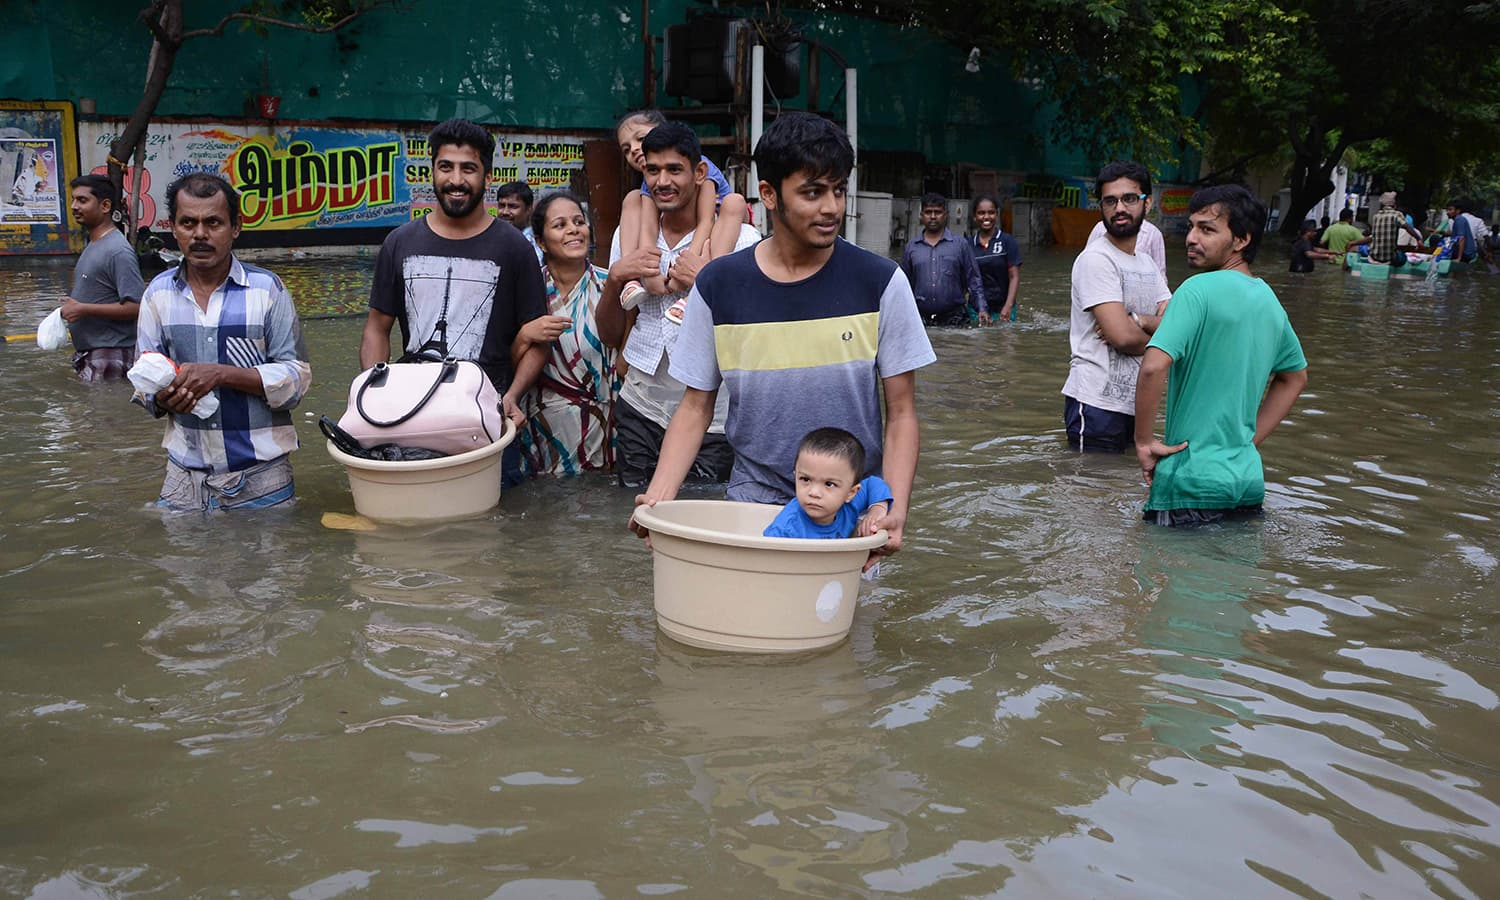 essays on floods in india India, being a peninsular country and surrounded by the arabian sea, indian ocean and the bay of bengal, is quite prone to flood as per the geological survey of india (gsi), the major flood prone areas of india cover almost 125% area of the country.